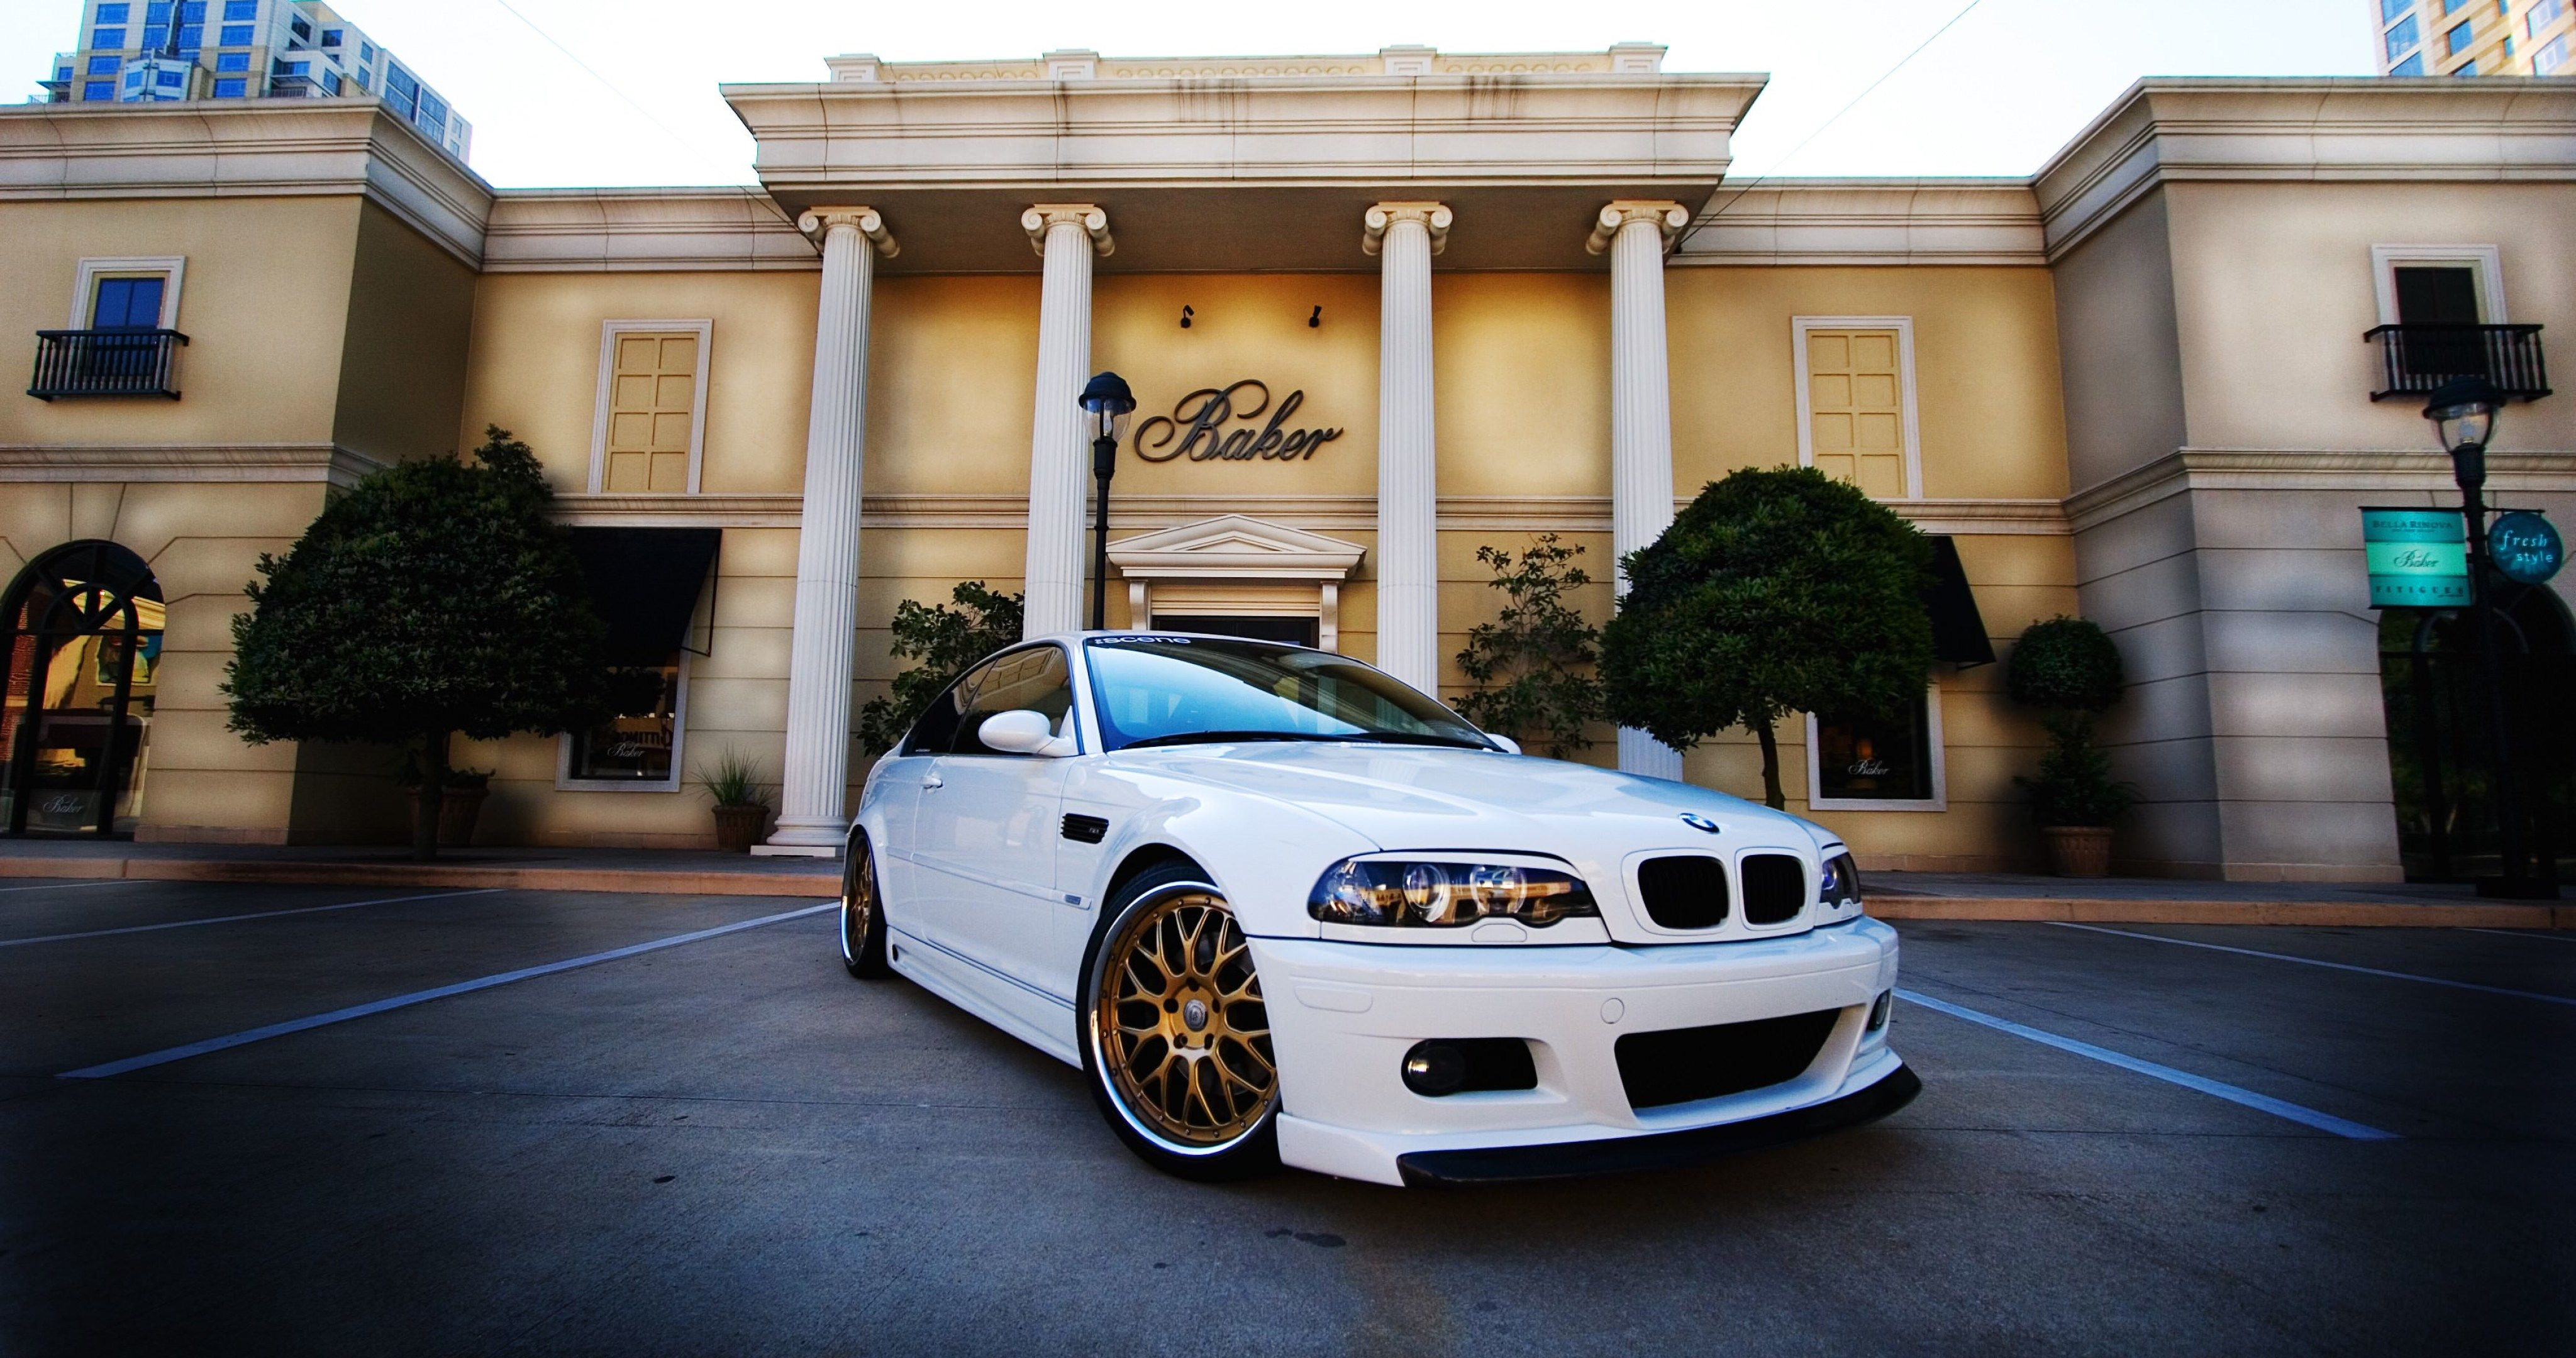 White bmw e46 m3 4k ultra hd wallpaper ololoshka pinterest white bmw e46 m3 4k ultra hd wallpaper voltagebd Gallery